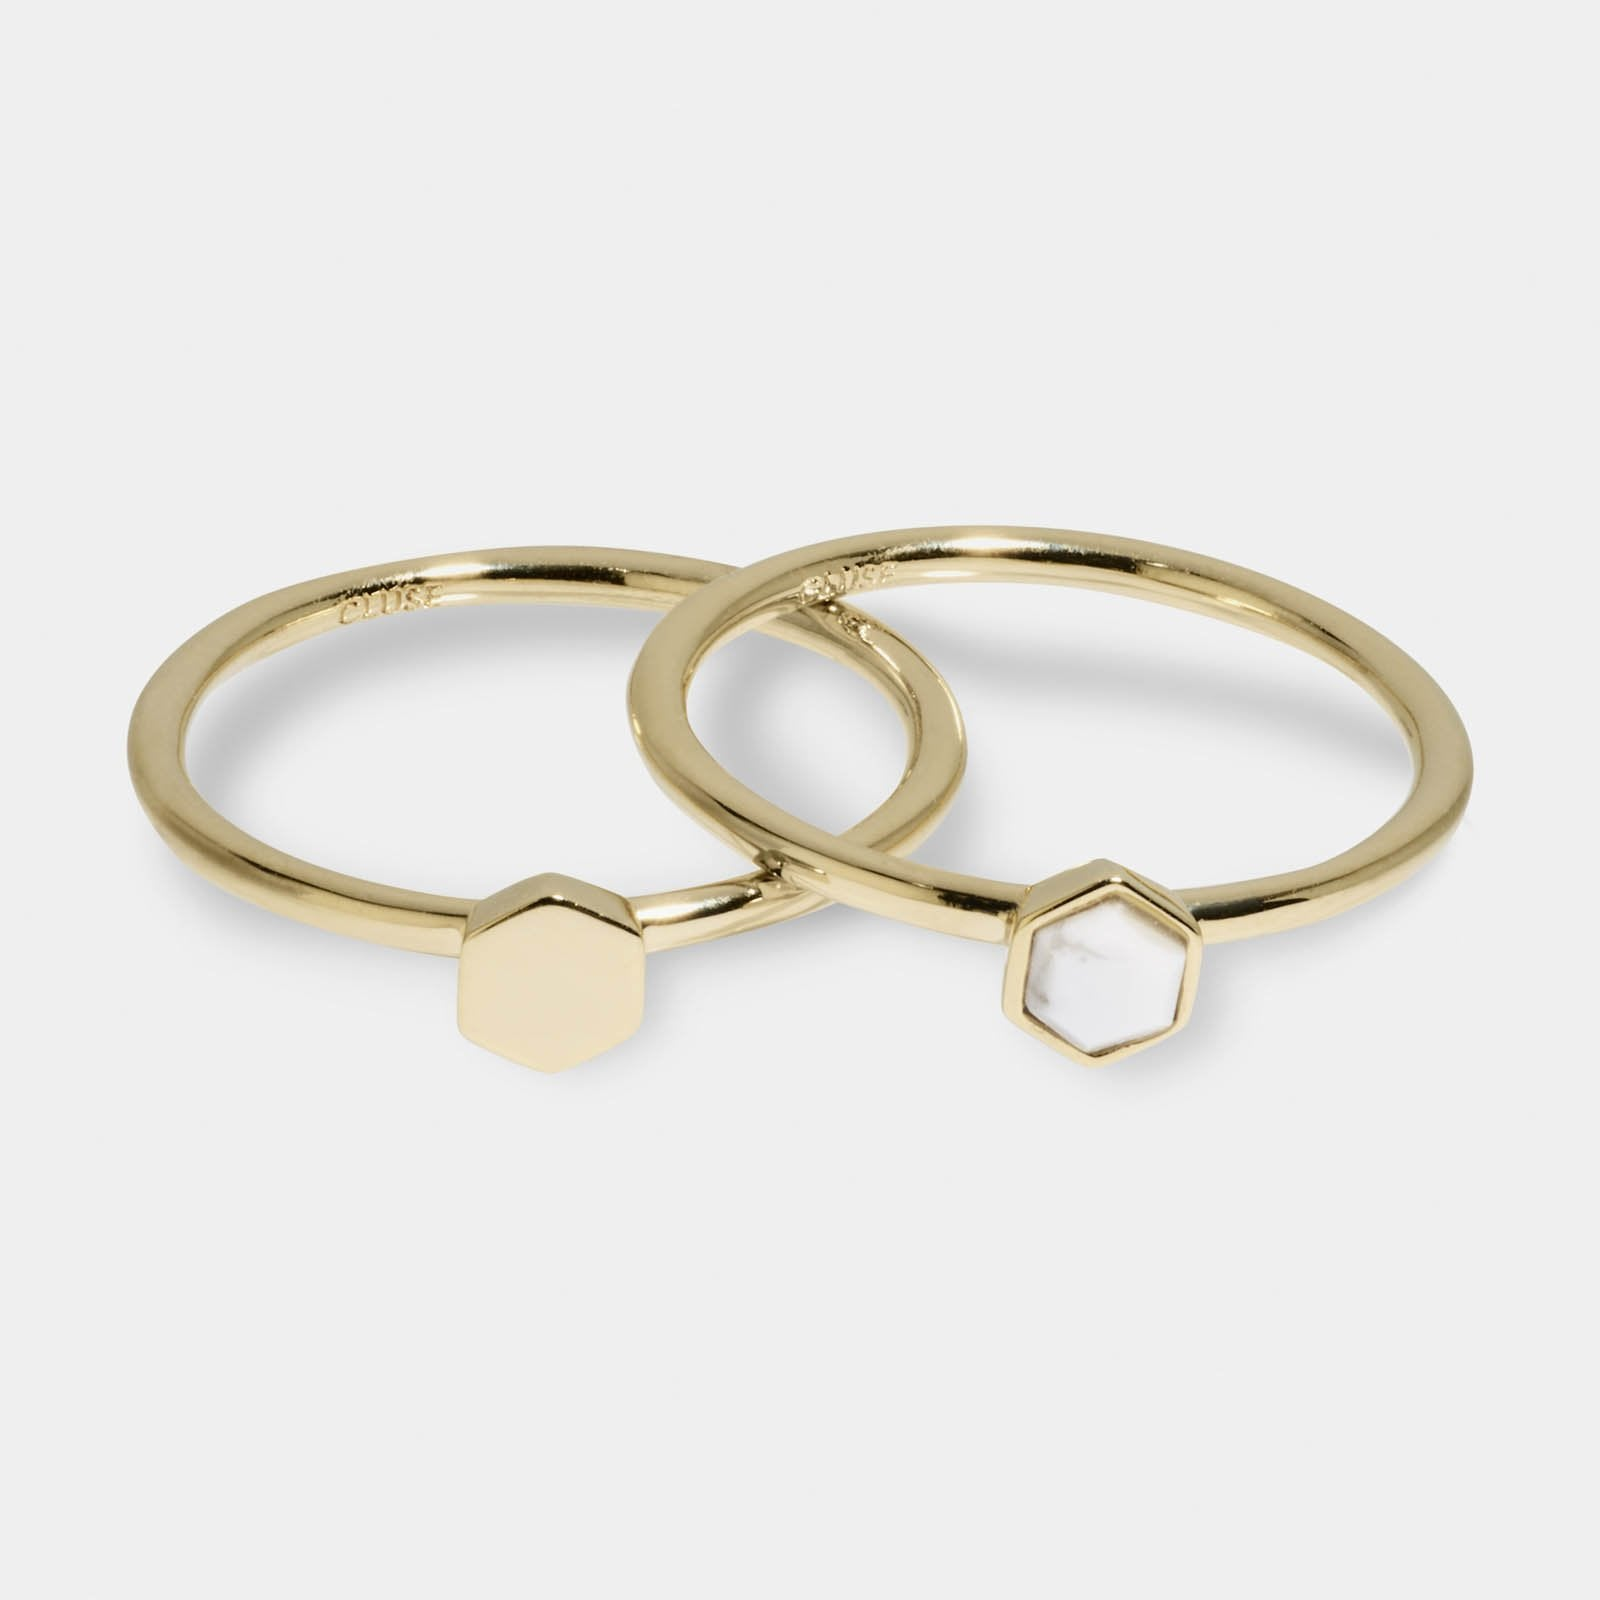 CLUSE Idylle Gold Solid And Marble Hexagon Ring Set CLJ41001-54 - ring set size 54